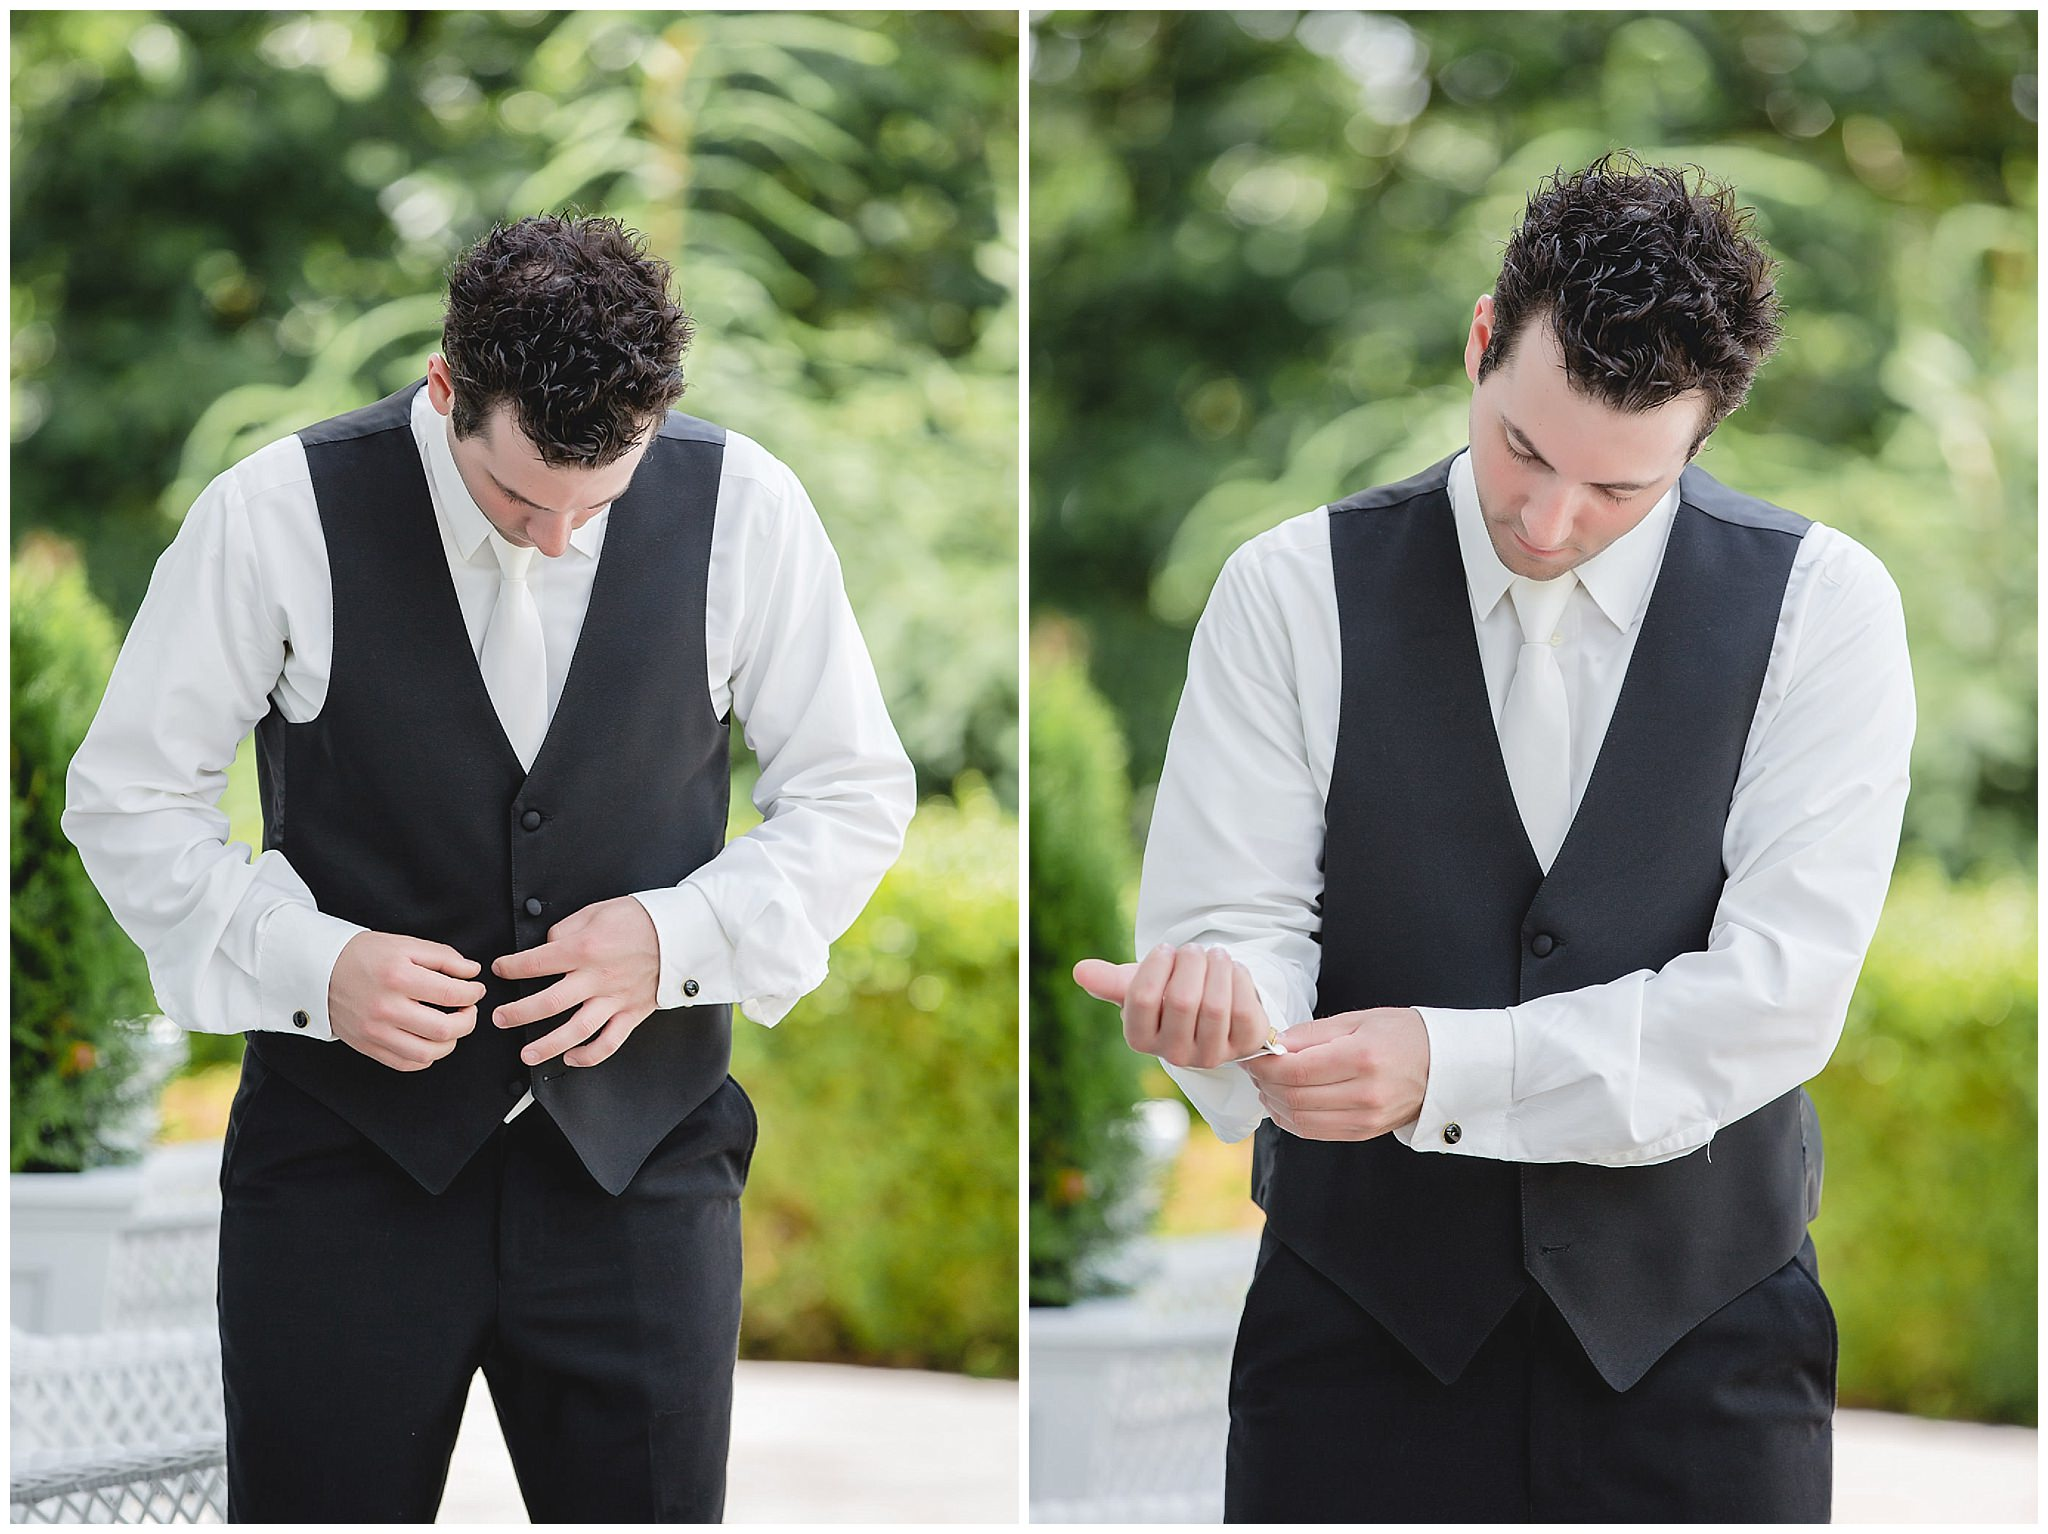 Groom gets ready for his wedding ceremony at Greystone Fields